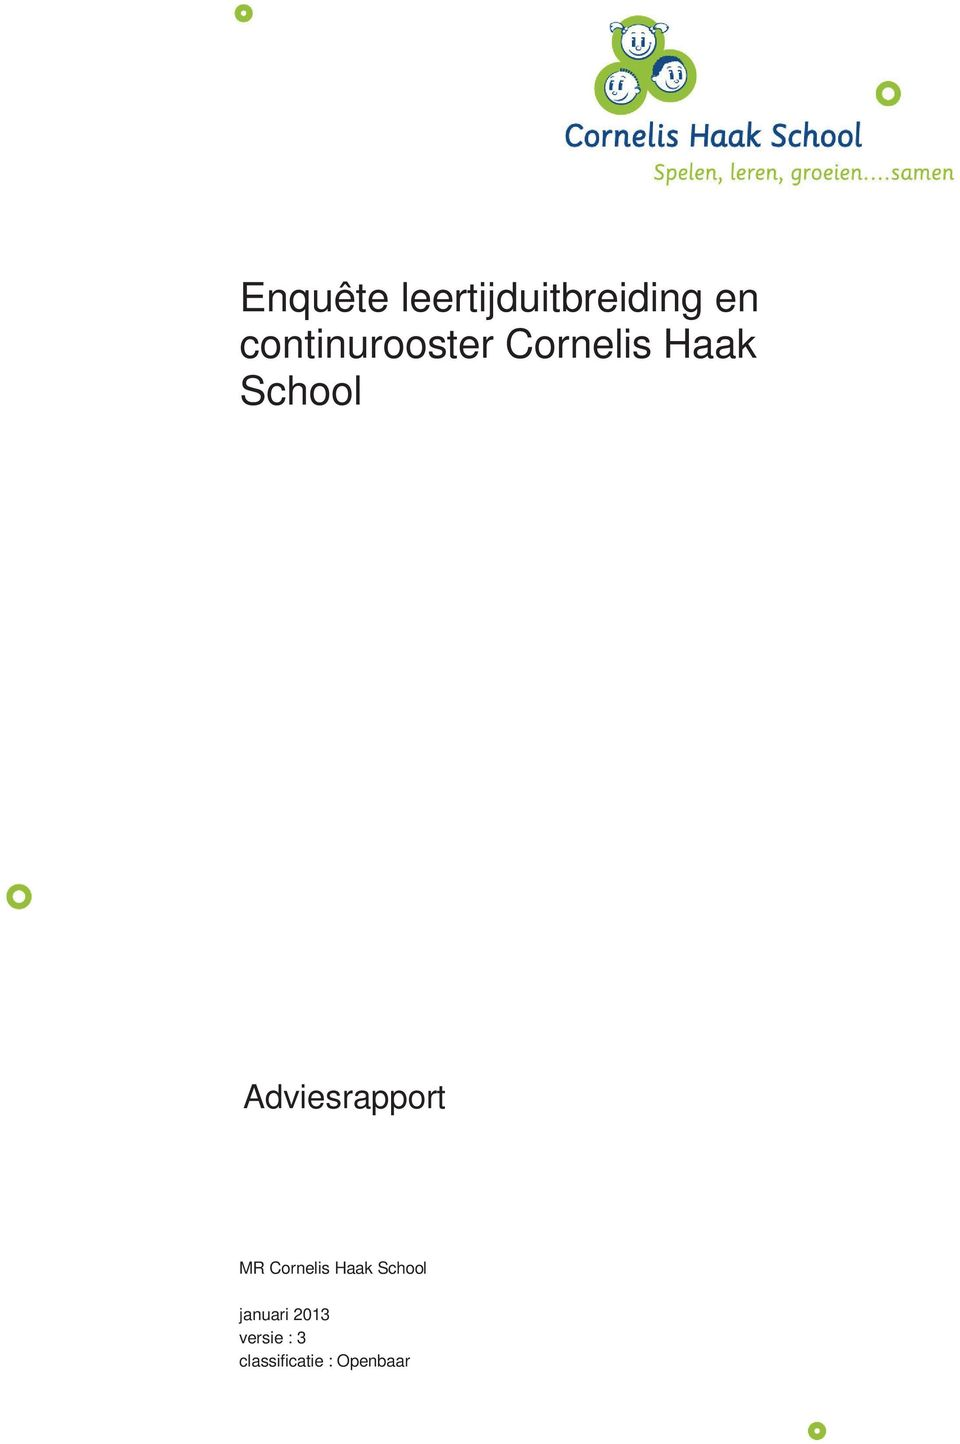 Adviesrapport MR Cornelis Haak School